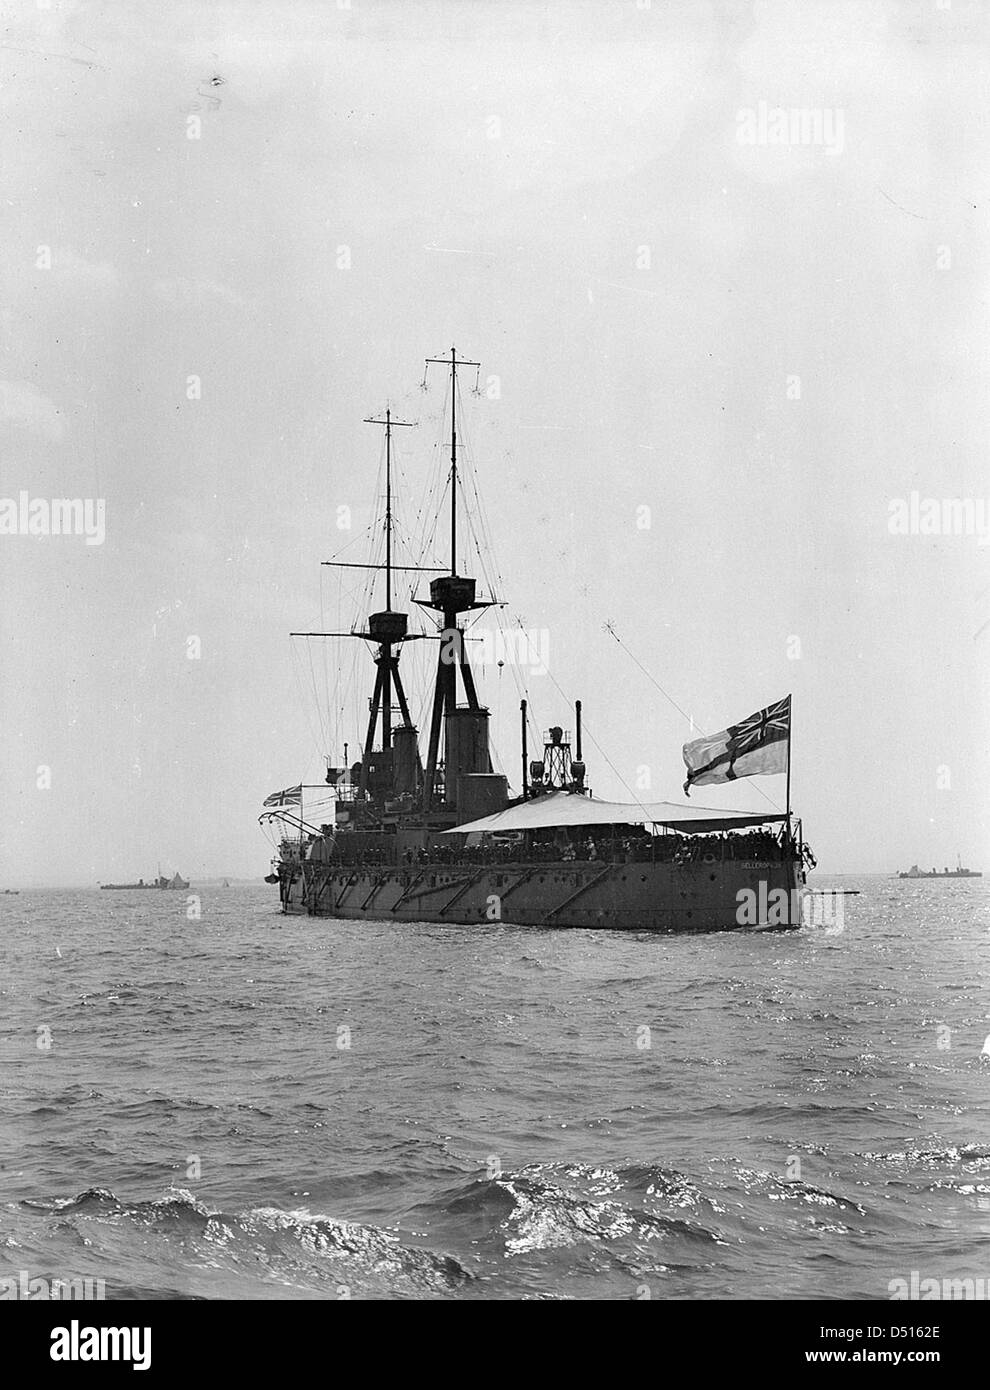 HMS 'Bellerophon' with awning rigged aft, anchored in the Thames Estuary - Stock Image